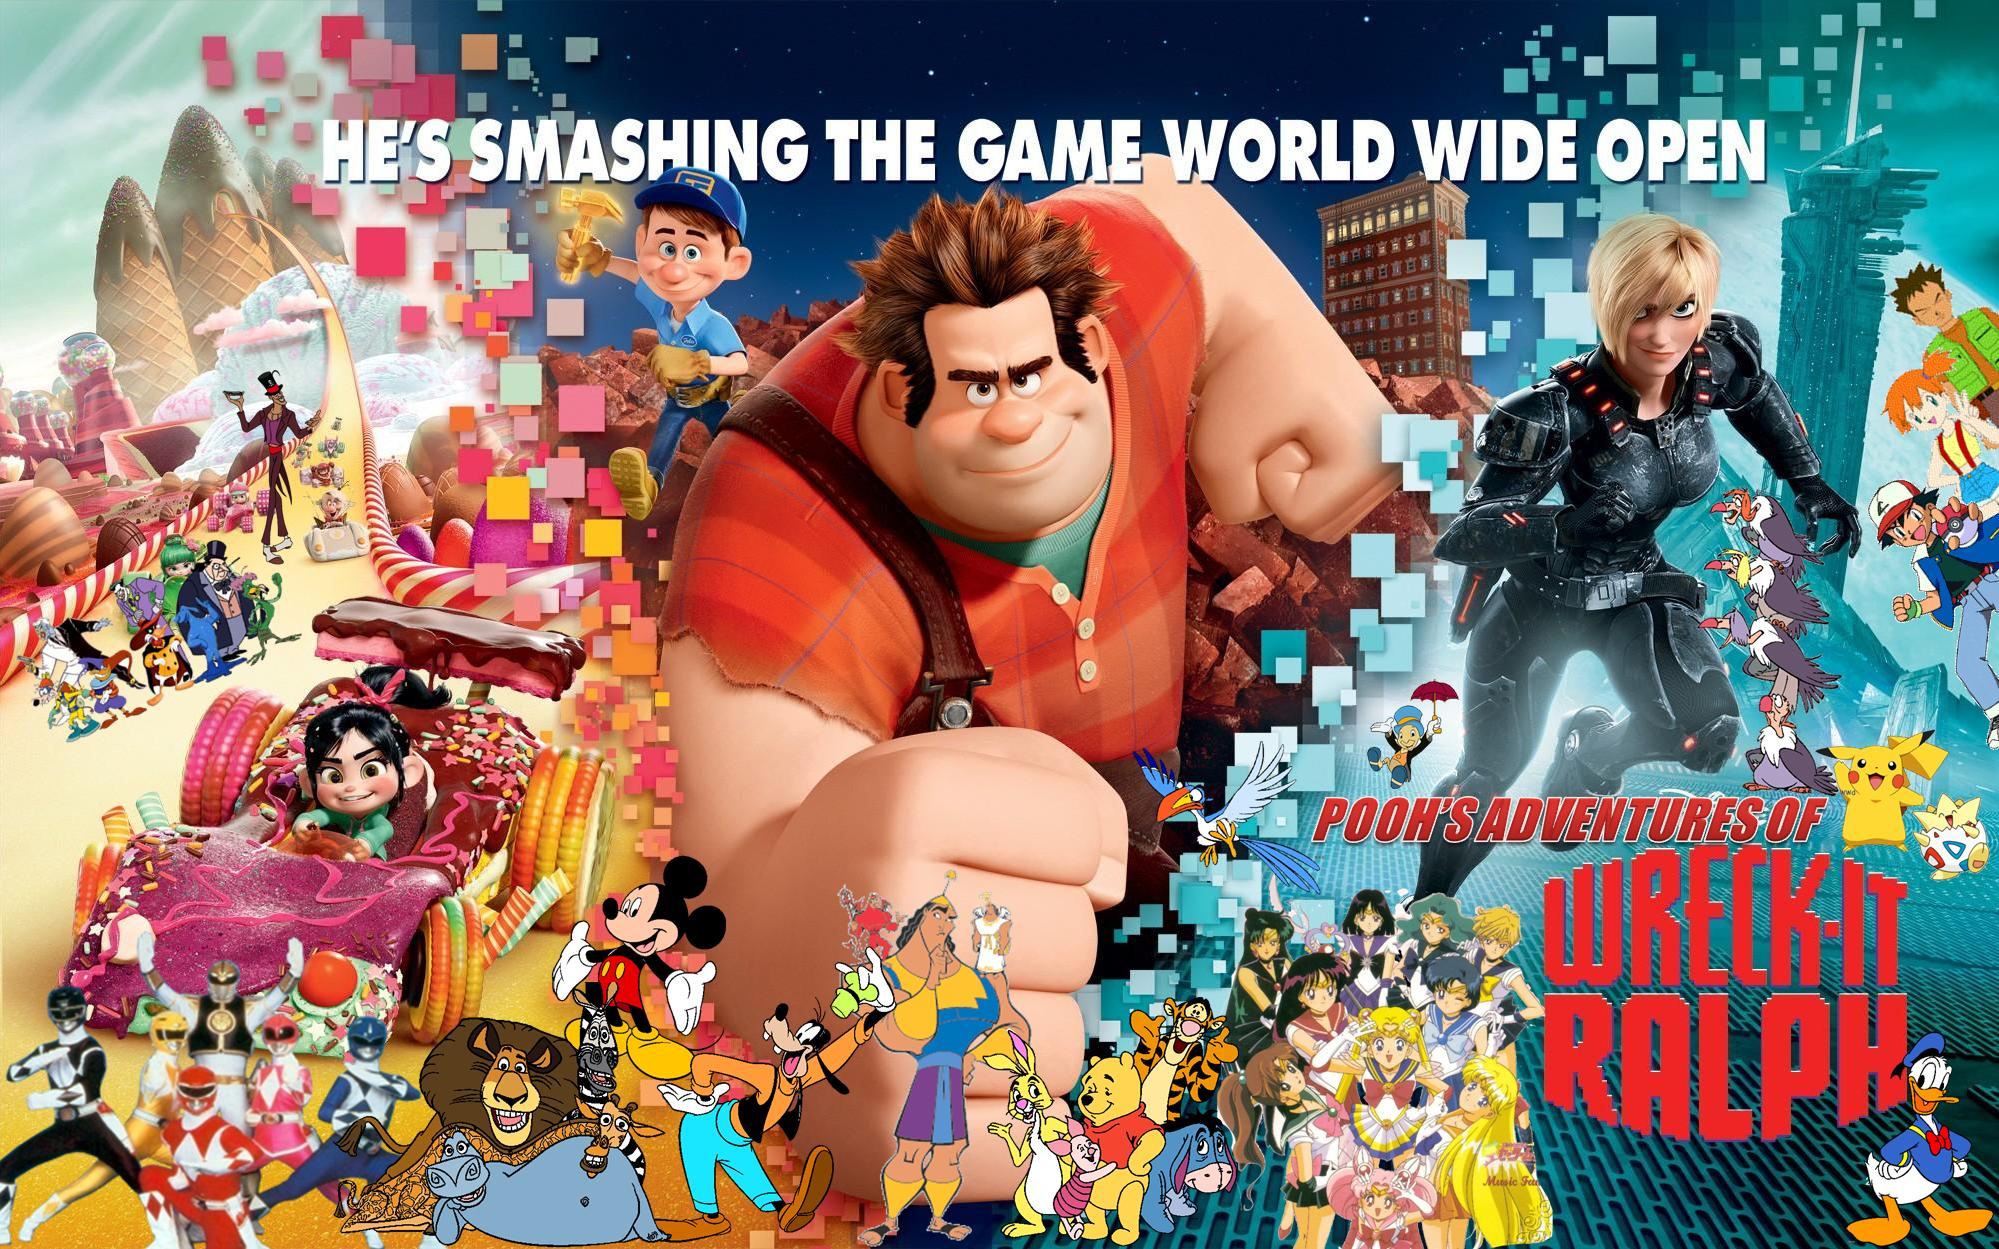 Pooh's Adventures of Wreck-it Ralph Poster